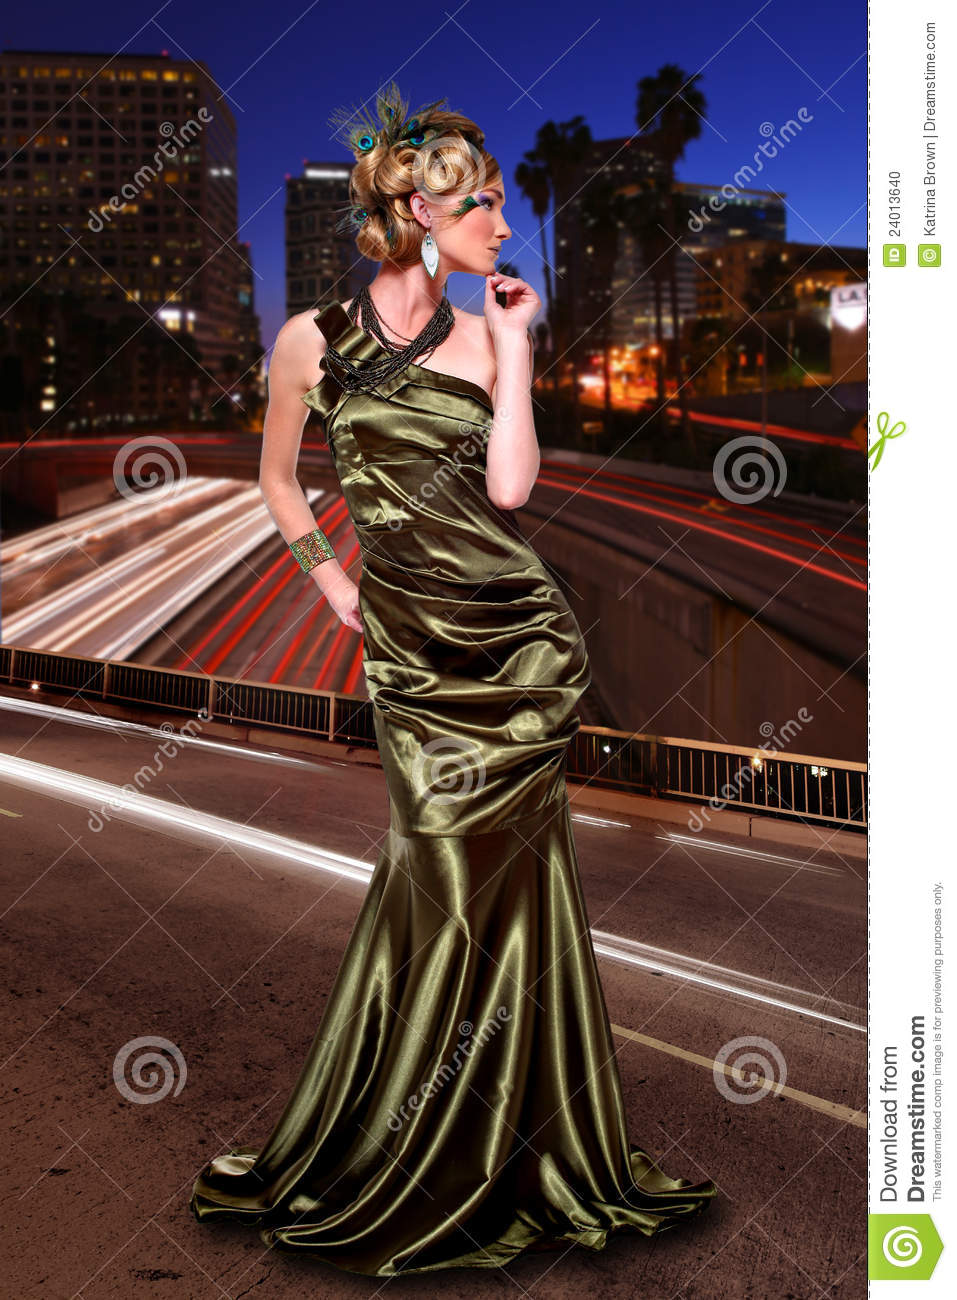 High Fashion Editorial Concept Stock Photo Image 24013640